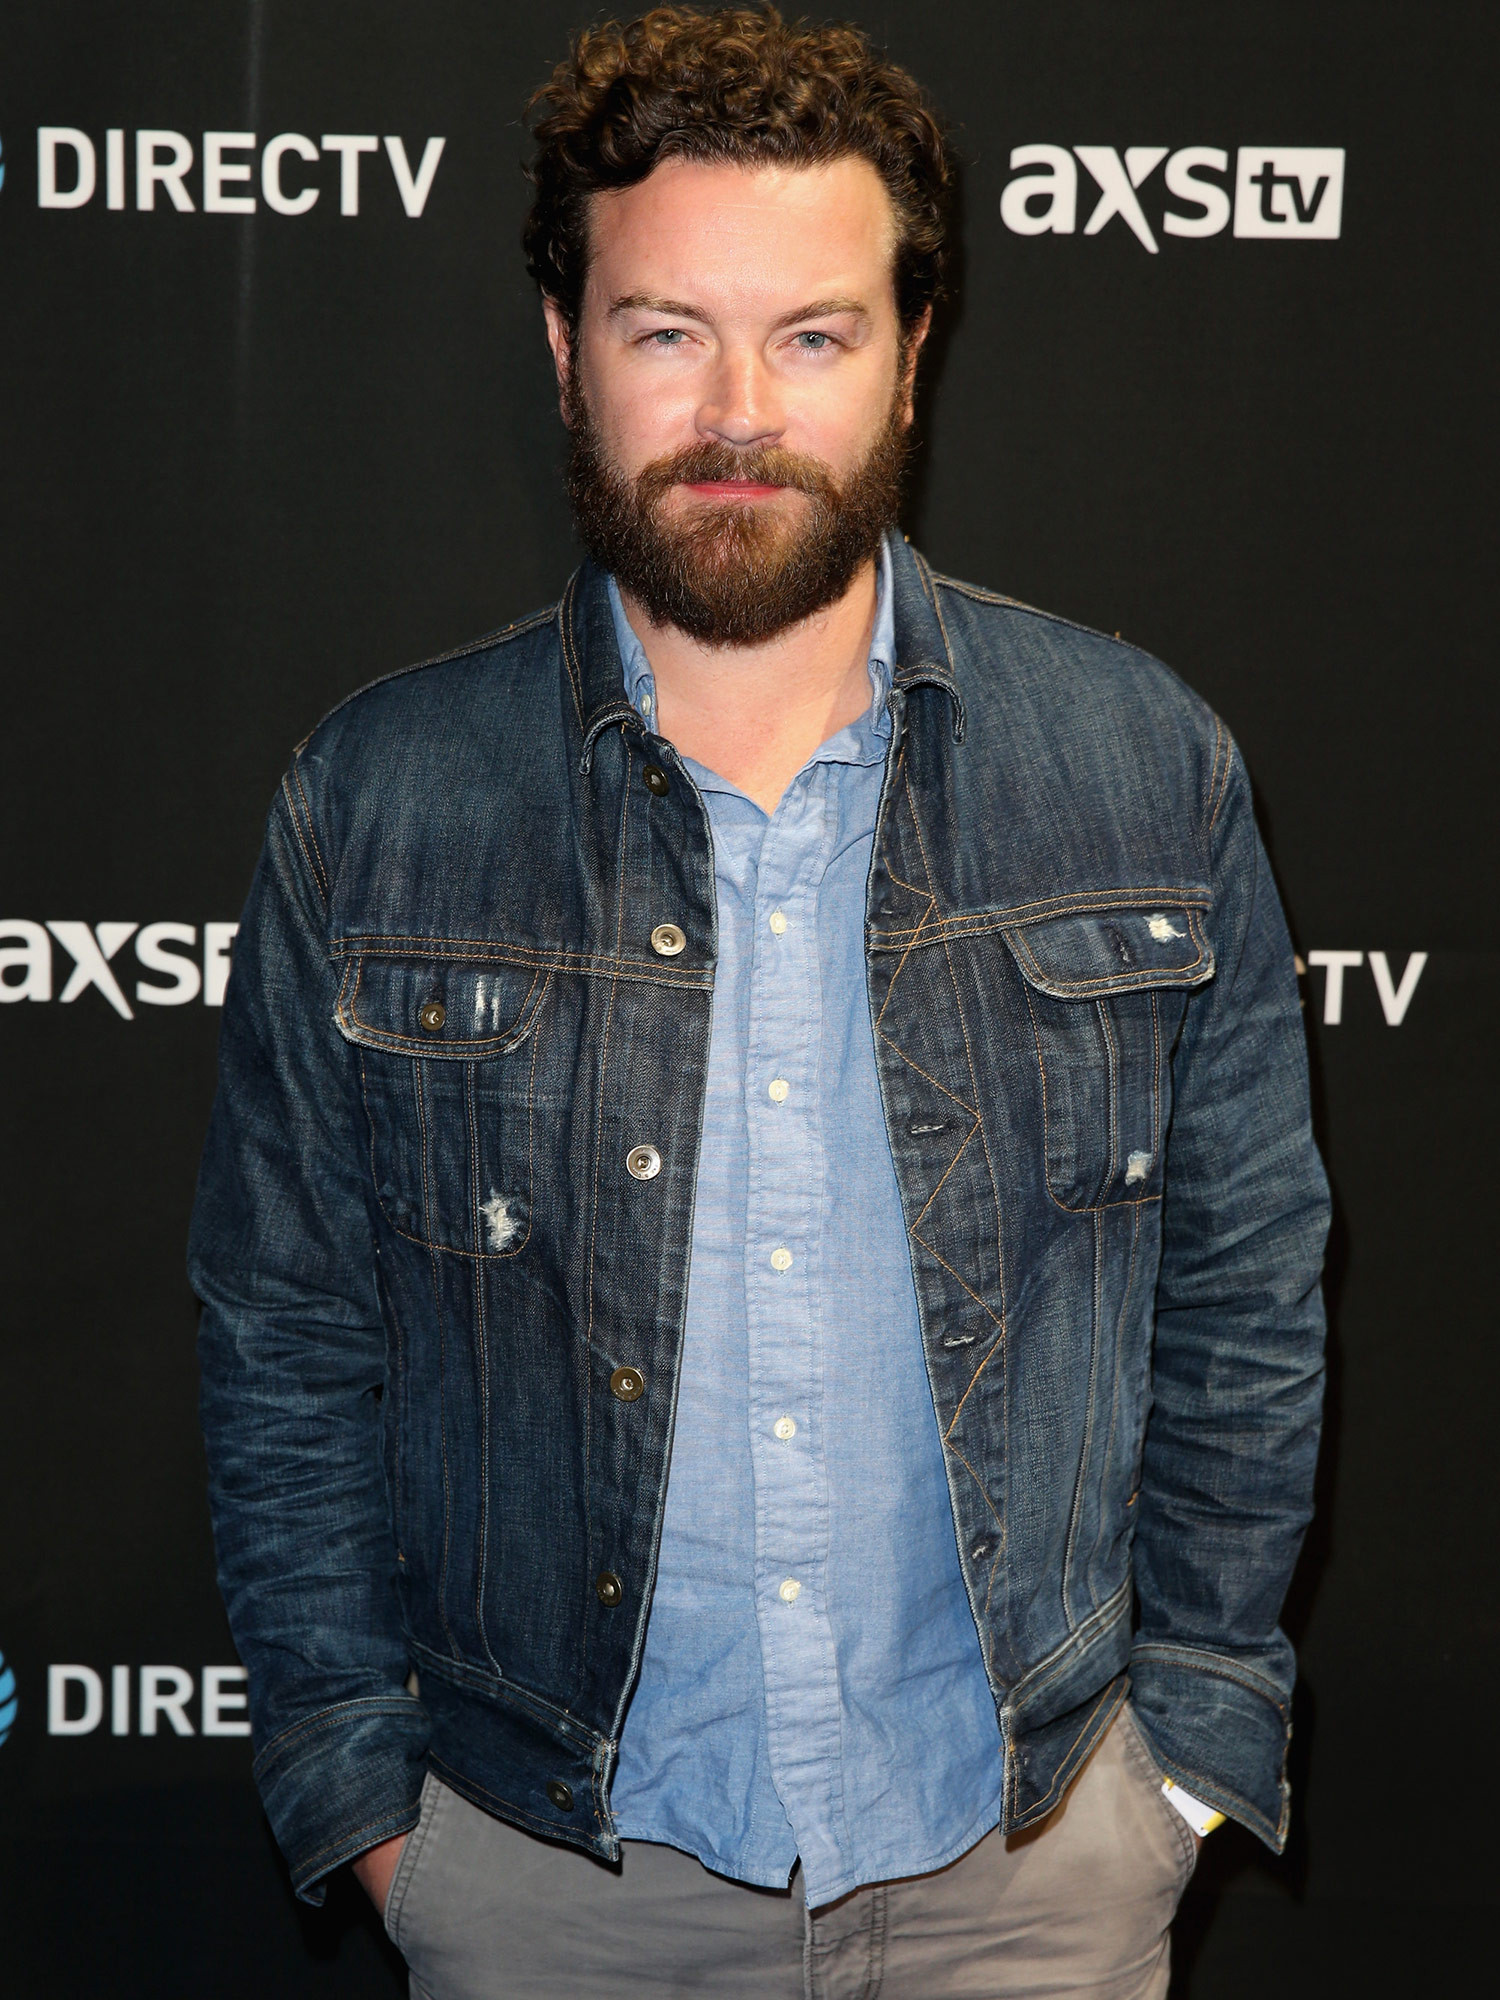 How tall is Danny Masterson?